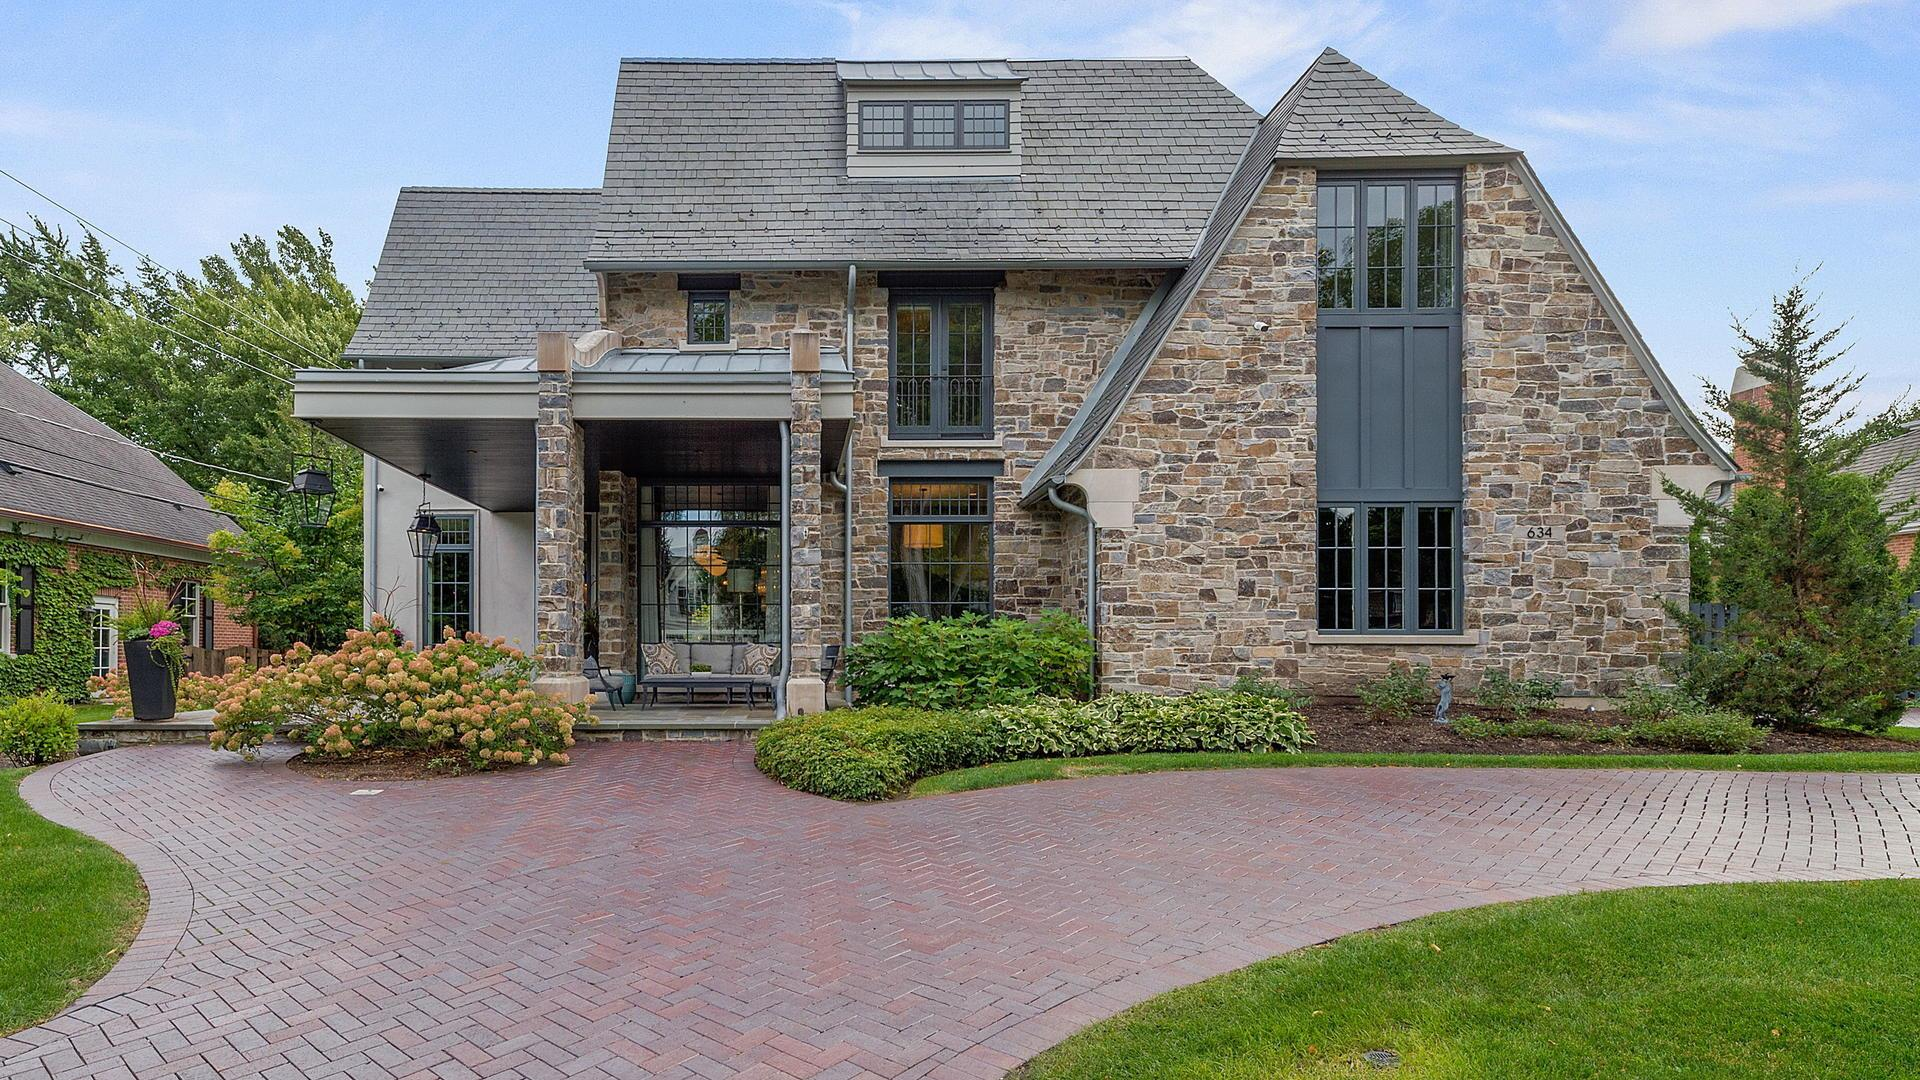 634 W Hickory Street, Hinsdale, IL 60521 - #: 10534490